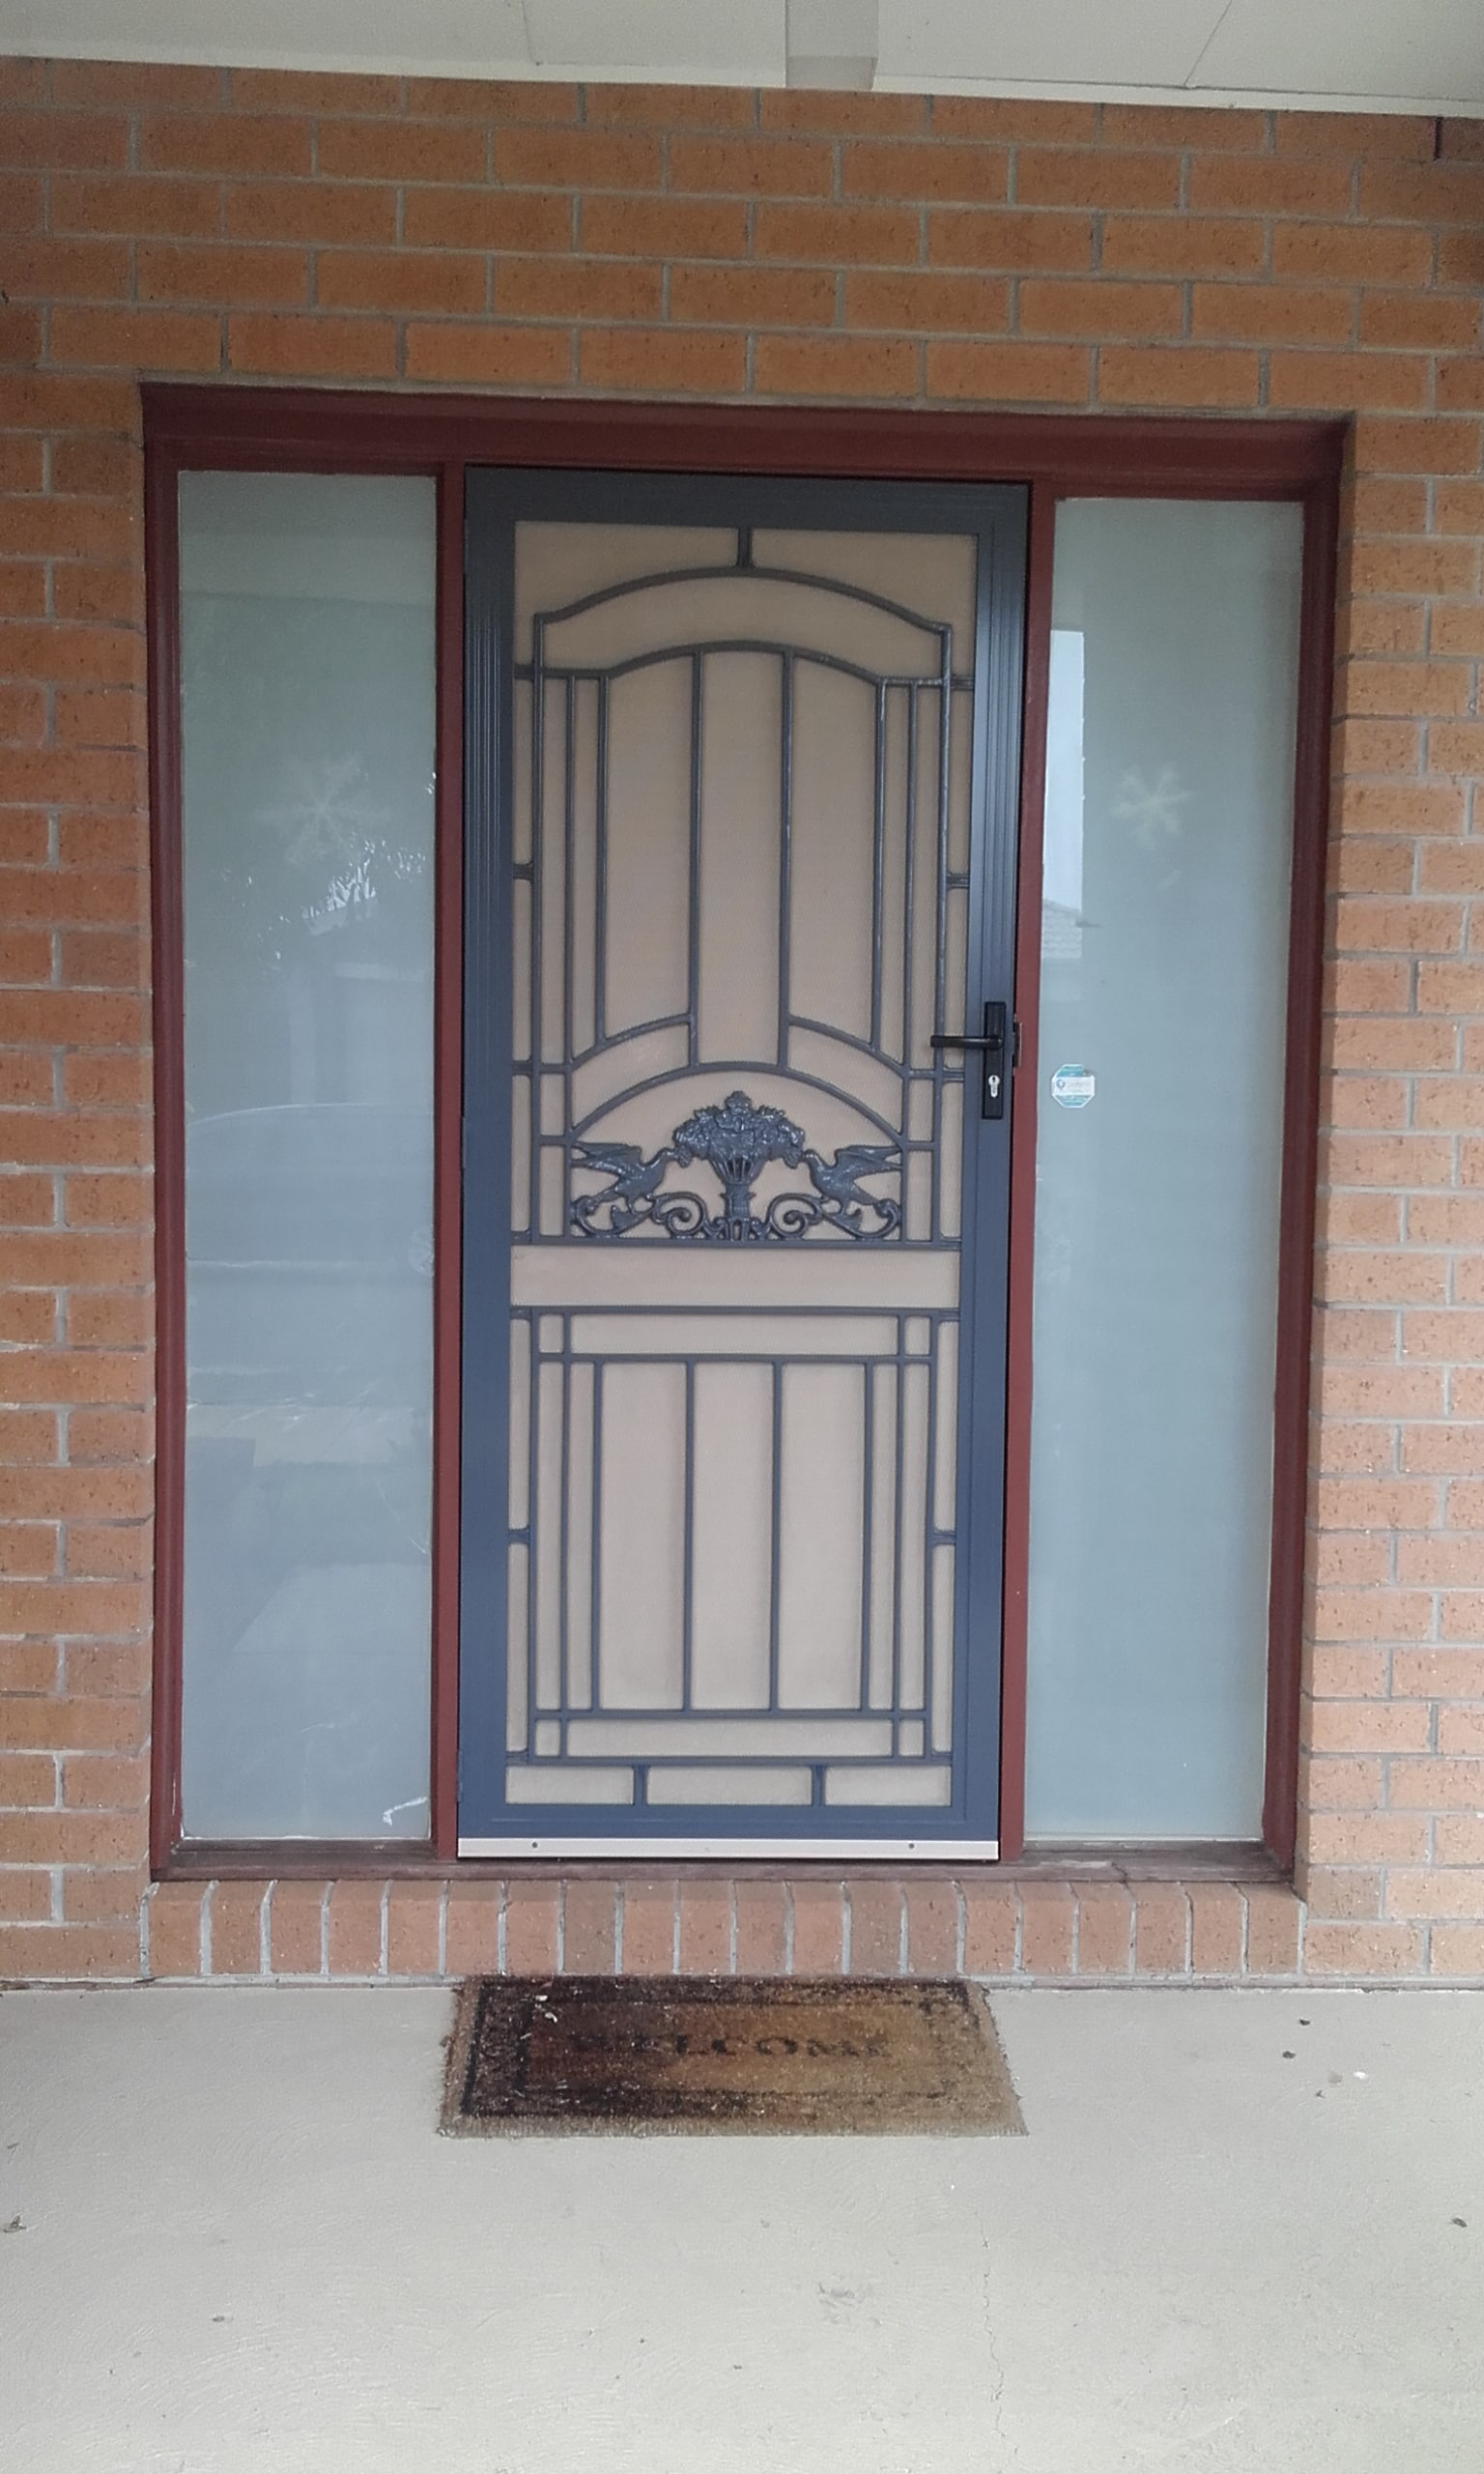 with believe only fashioned door the will to old sourced we ezy security screens notice doors fit you our quality using materials and commitment highest service perth locally together